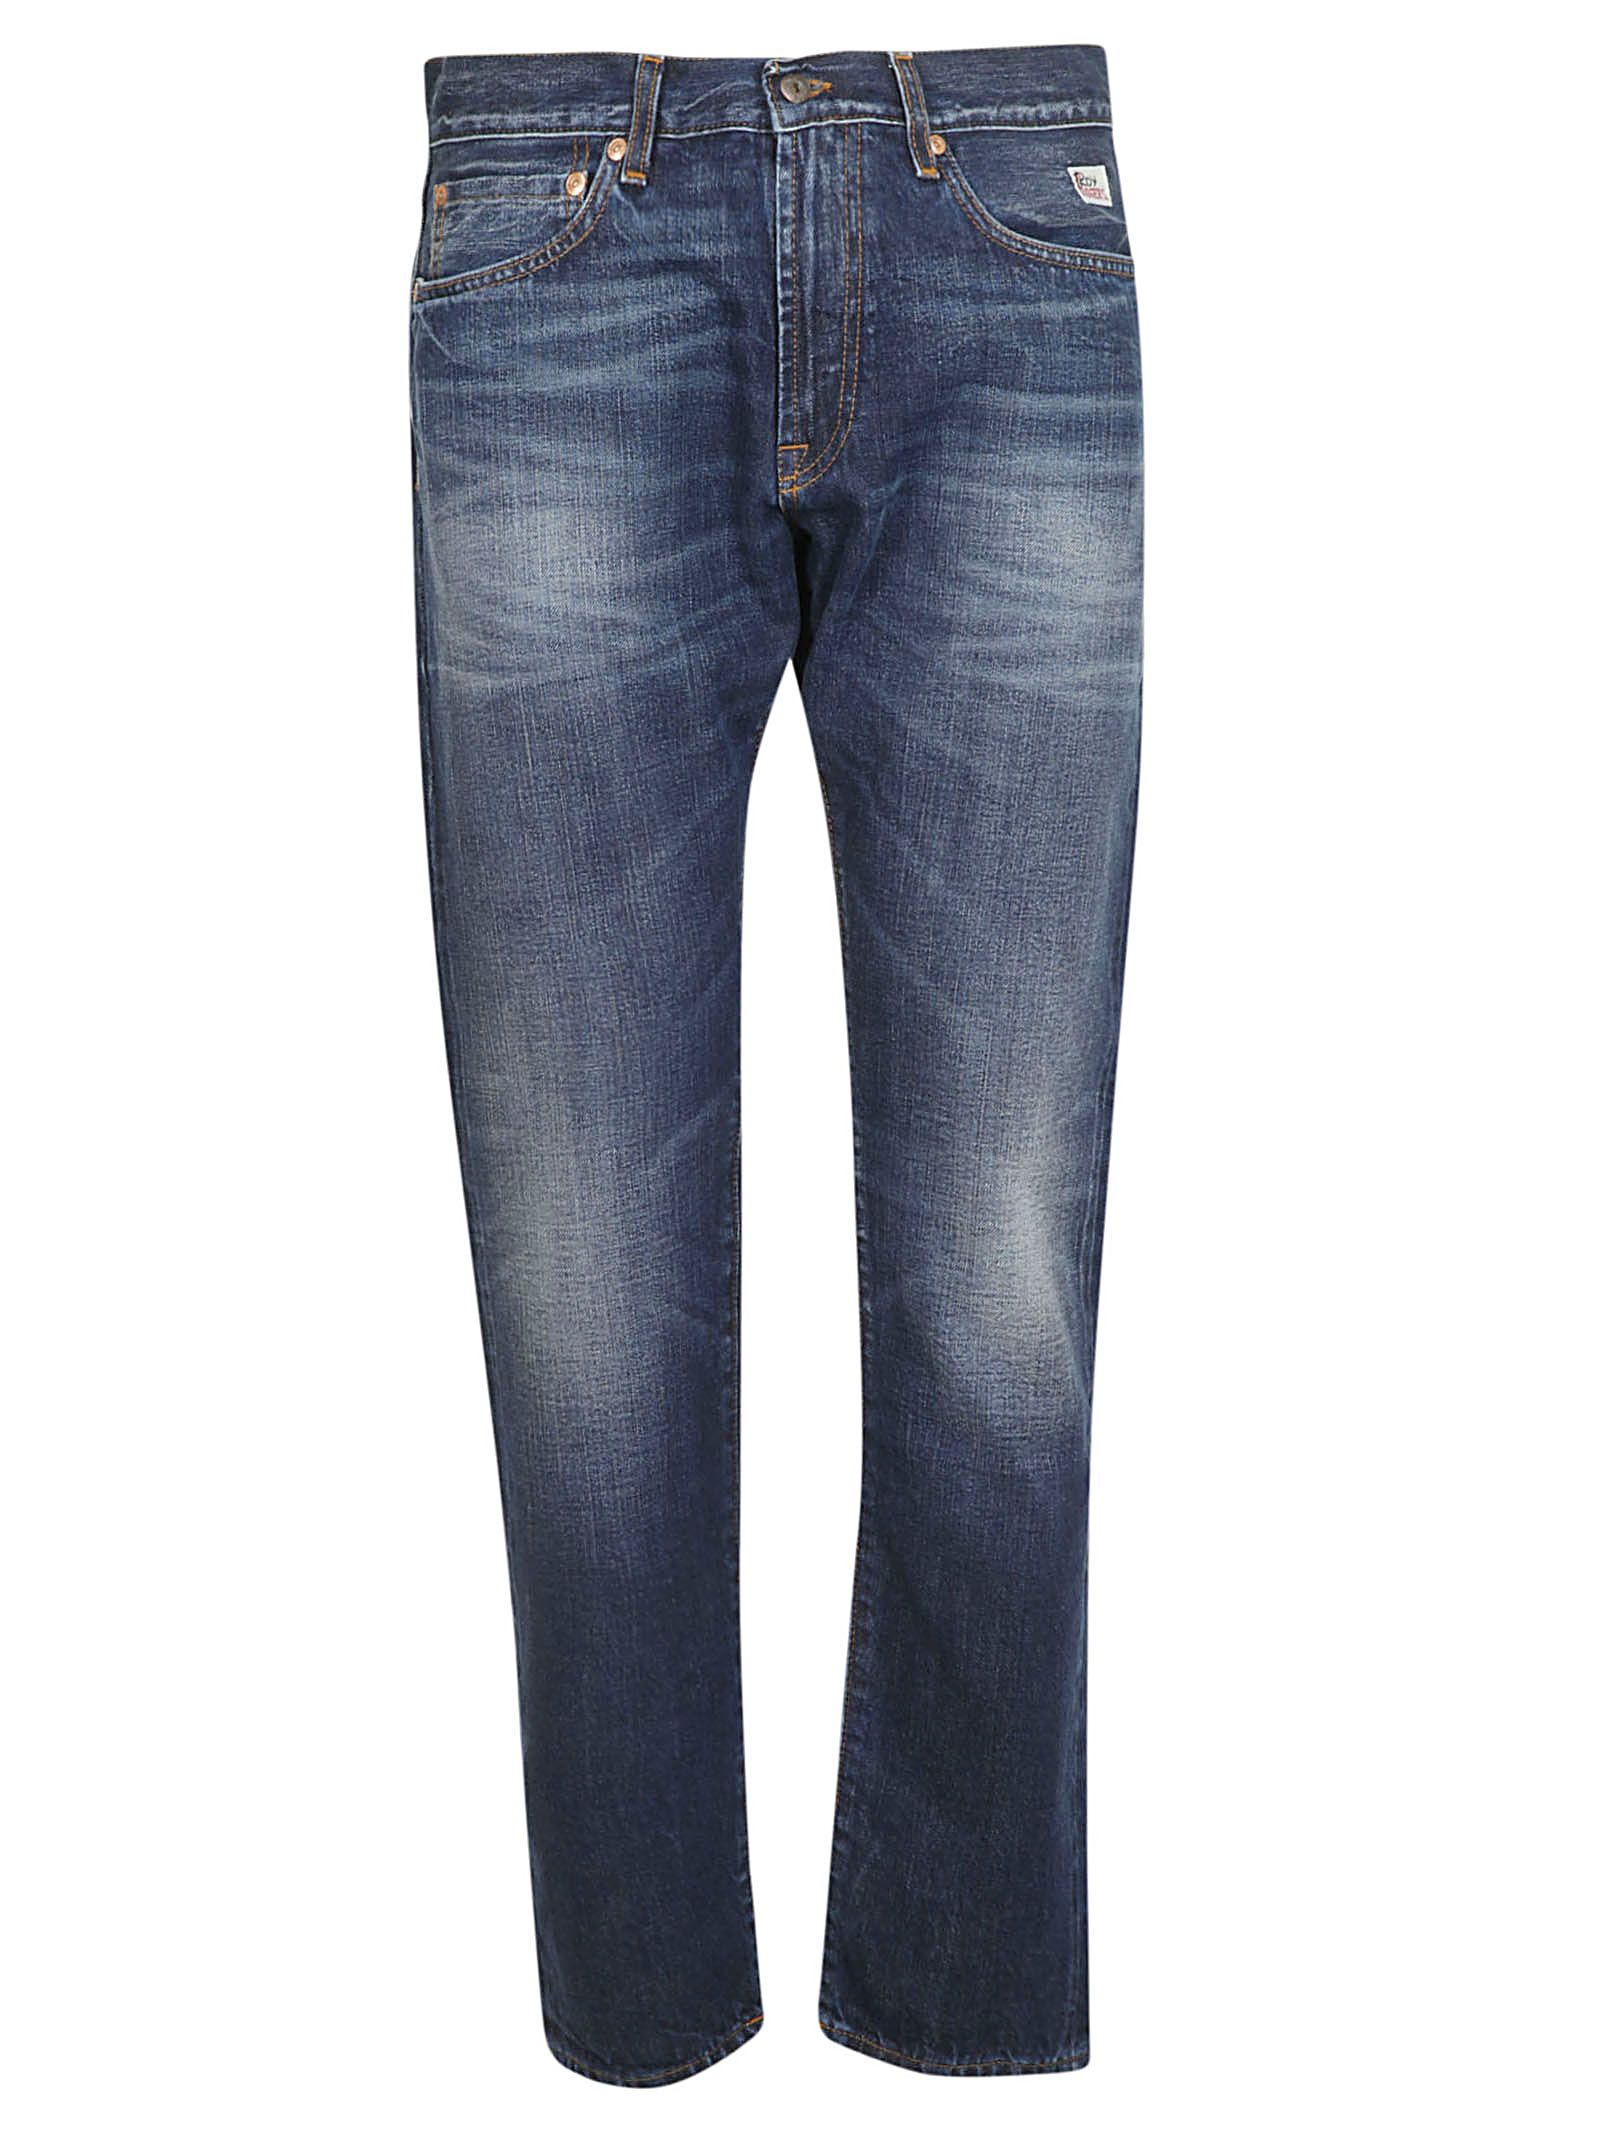 ROY ROGERS Authentic Jeans in Medio